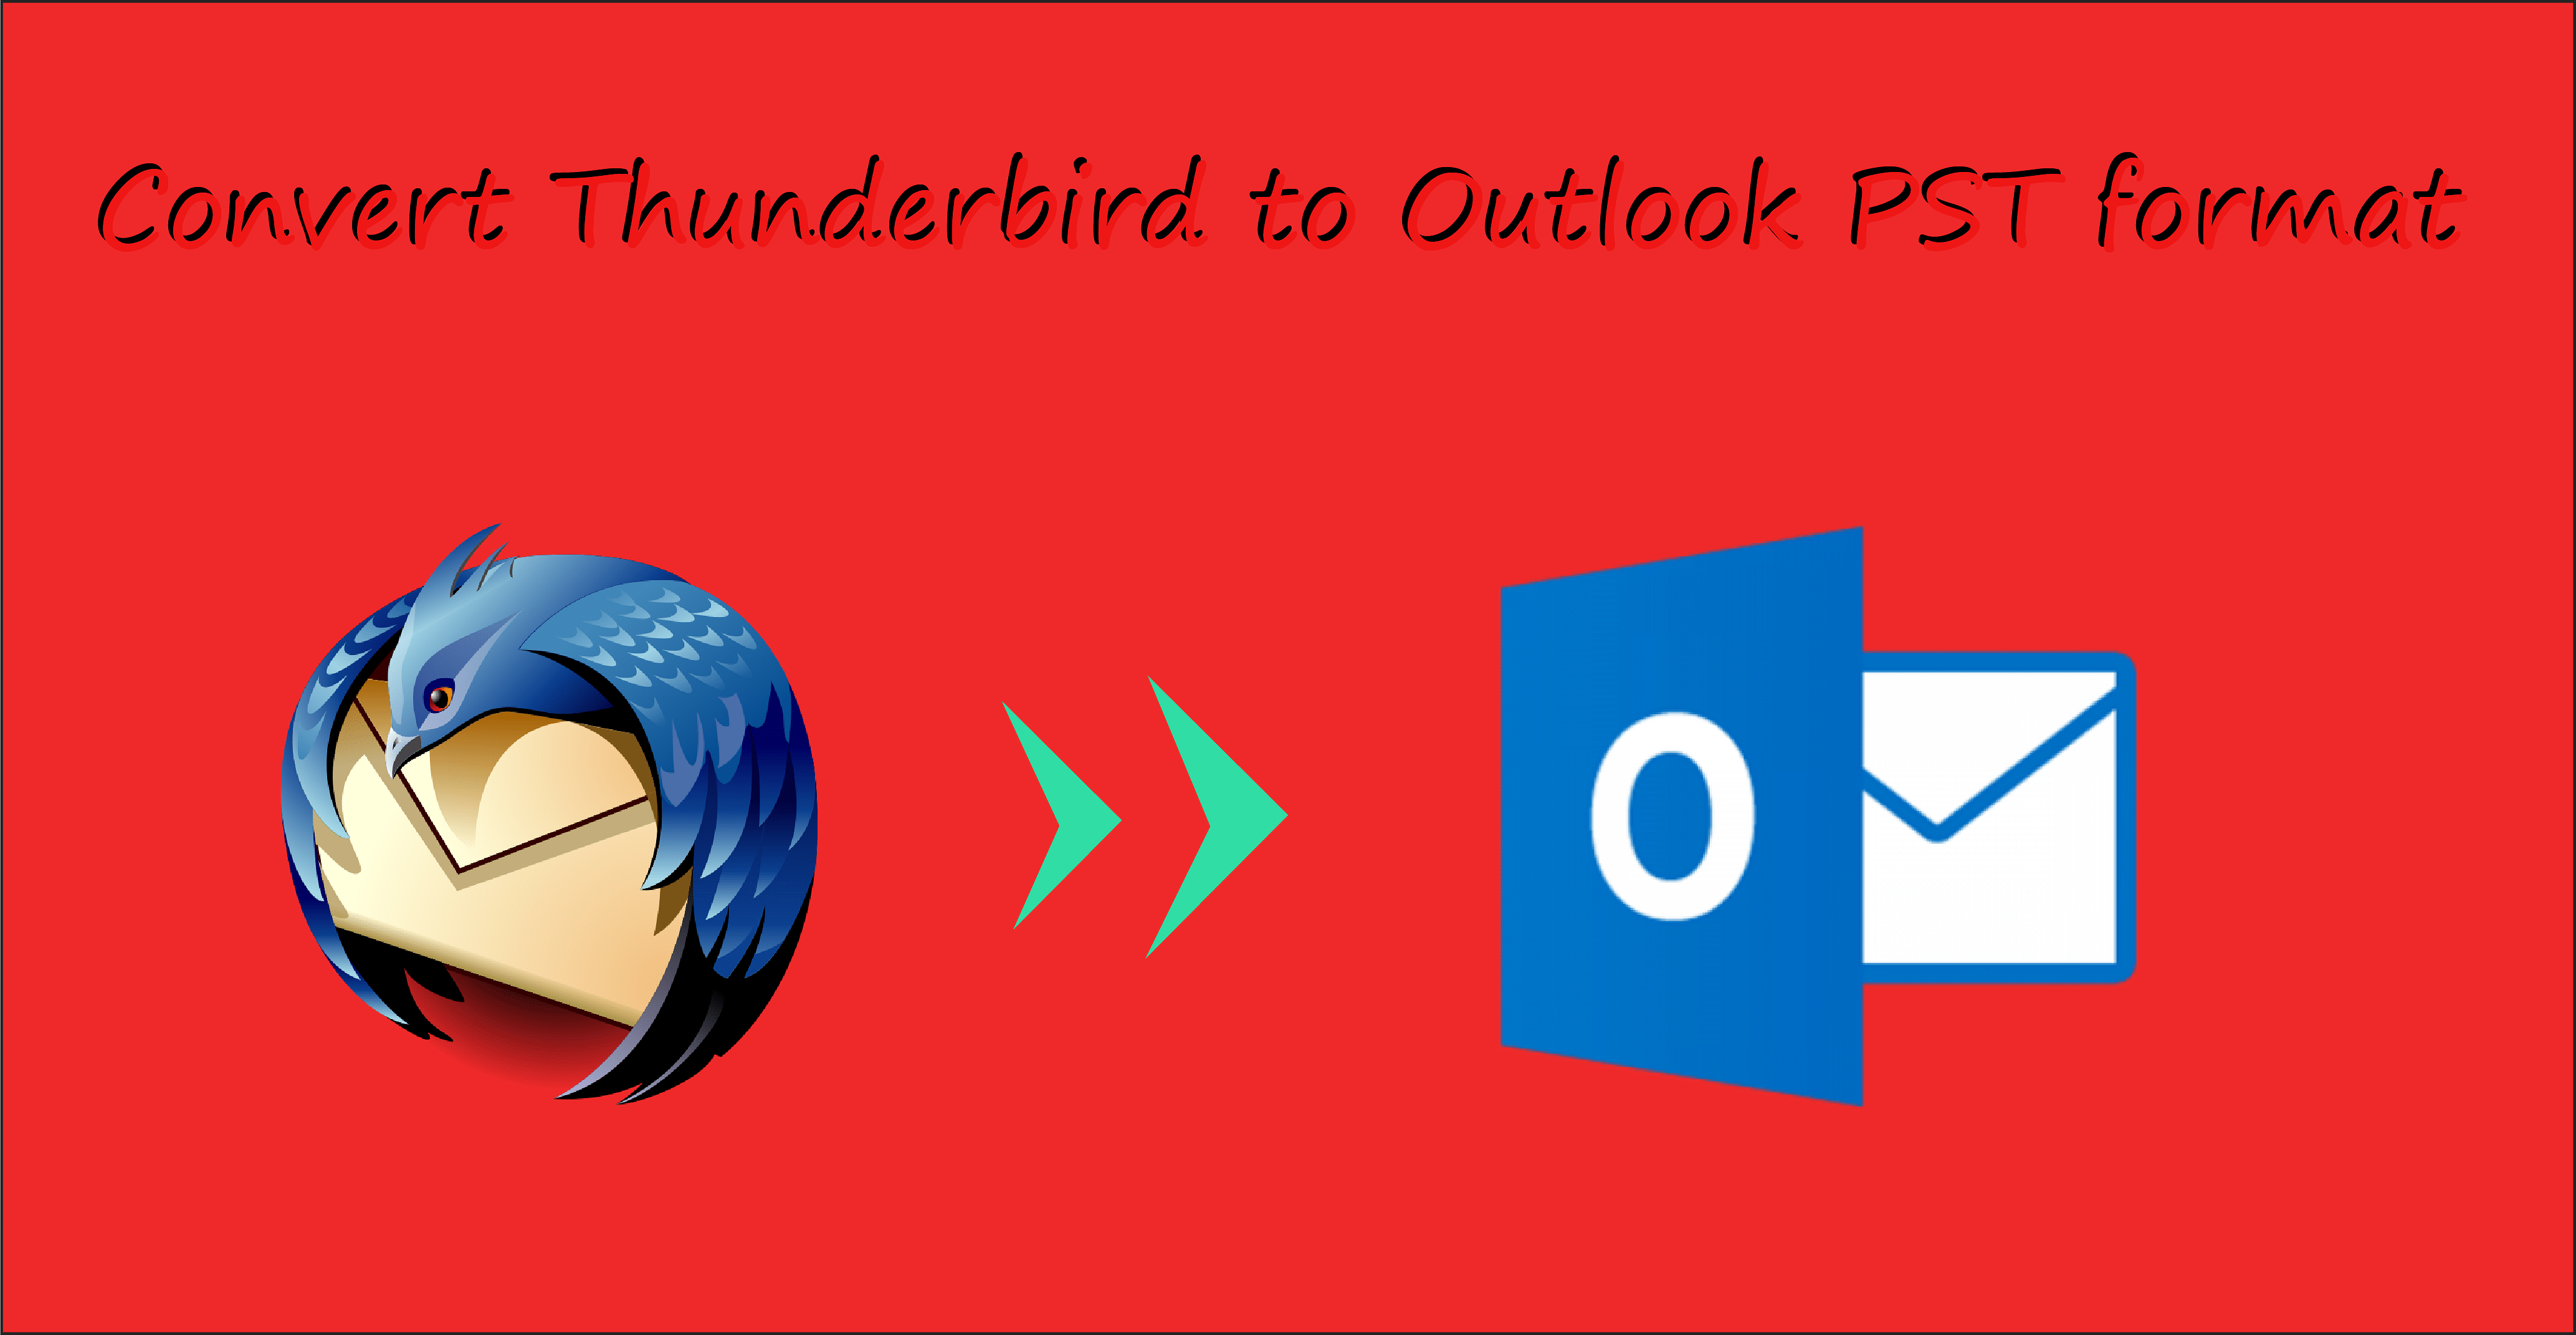 Convert Thunderbird to Outlook & Open mailbox in PST file format